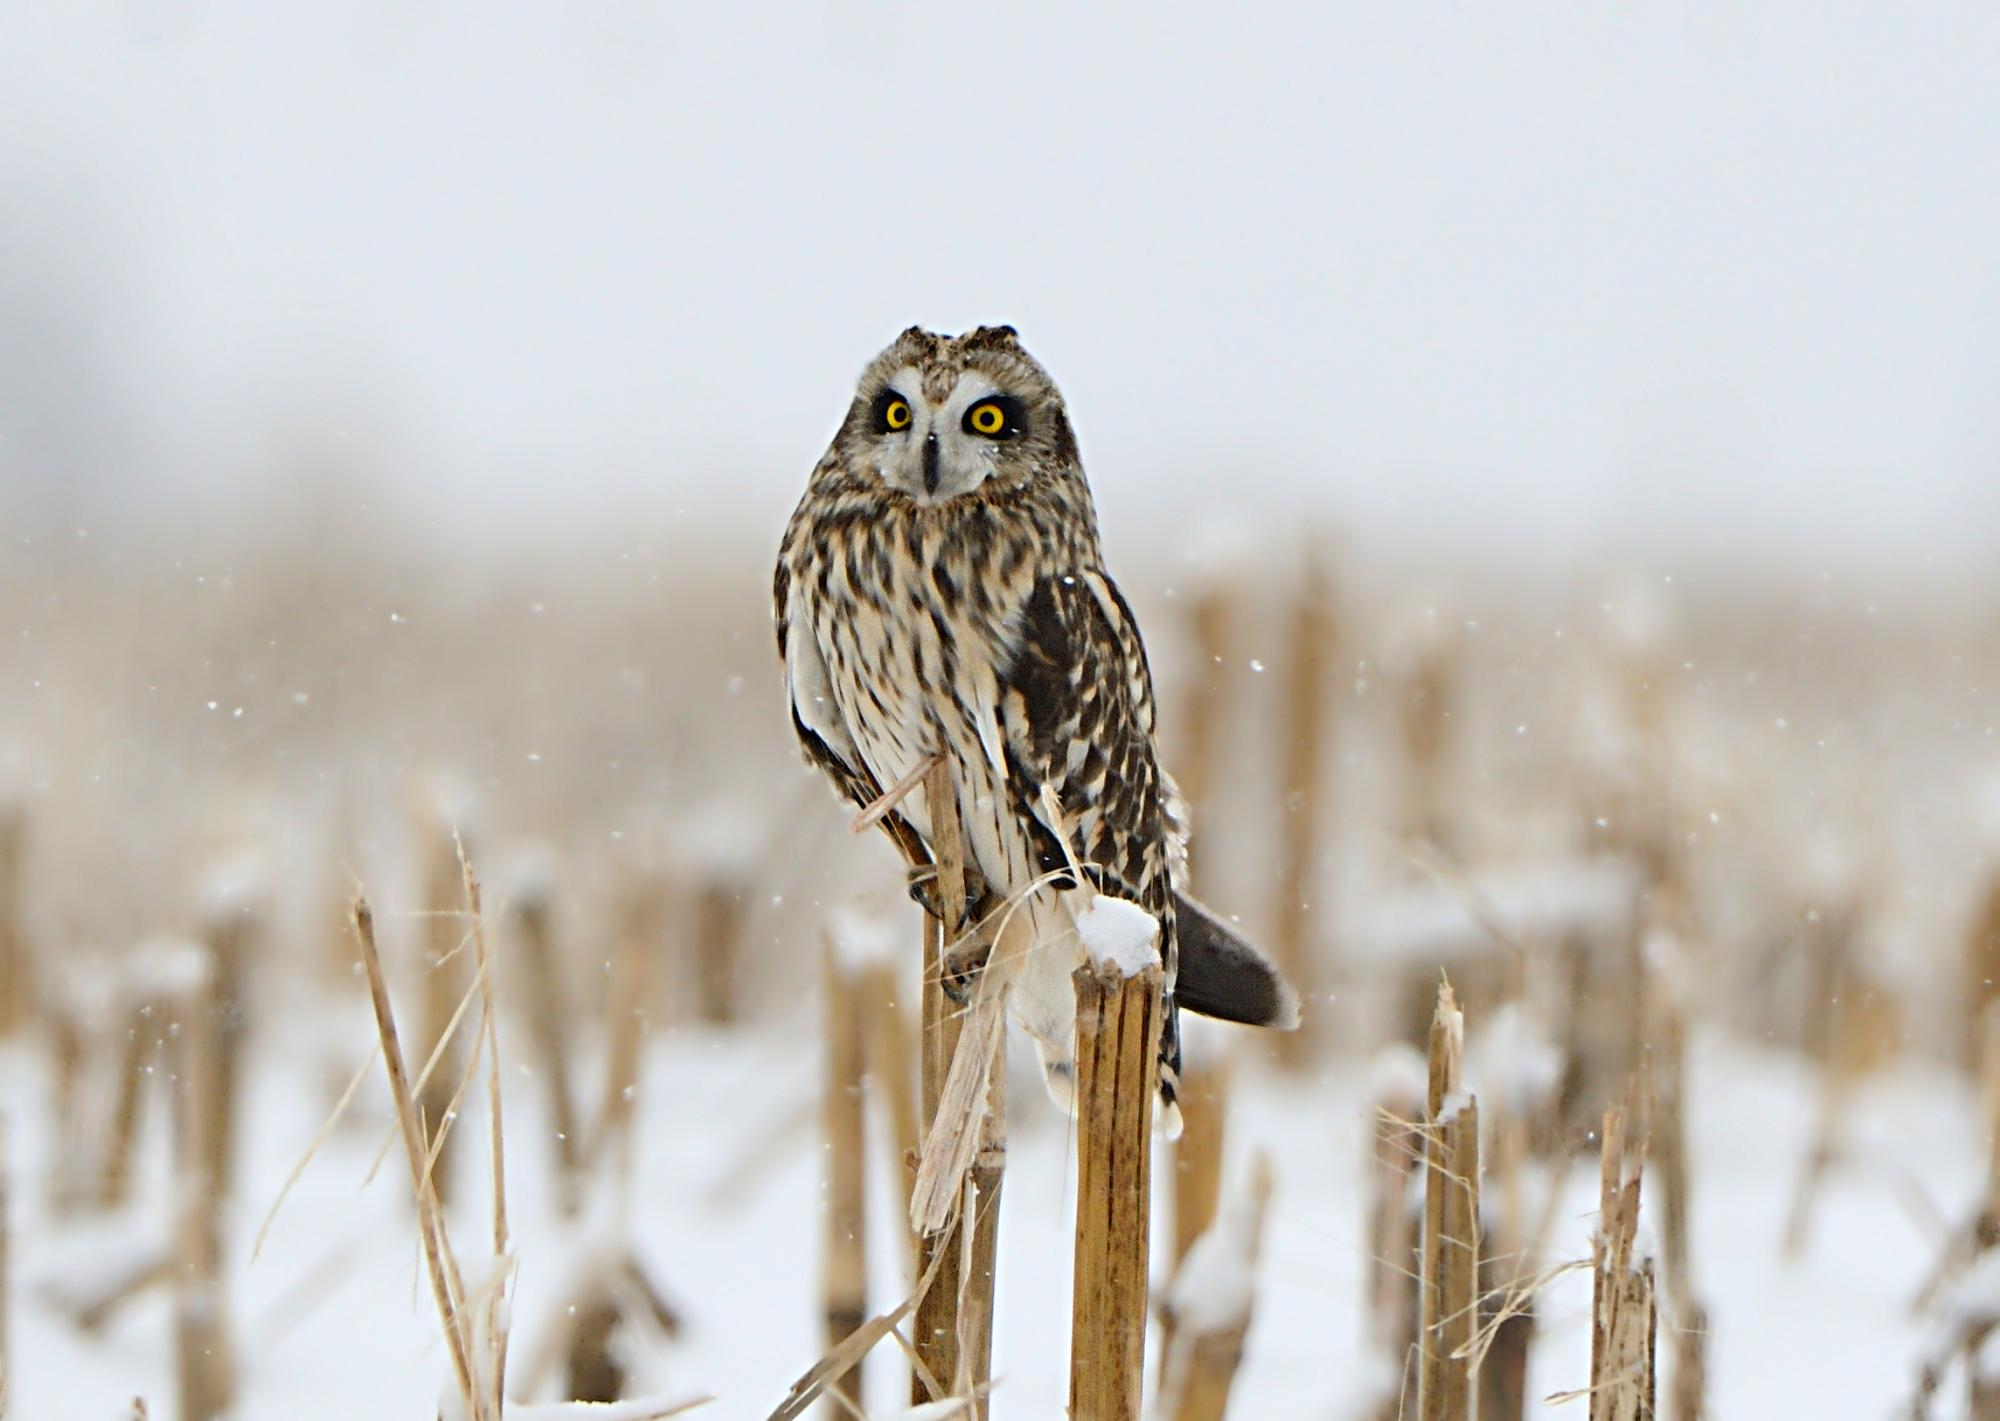 The short-eared owl migrates seasonally throughout its range, which includes every continent except Australia and Antarctica. | Photo by Dave Inman.